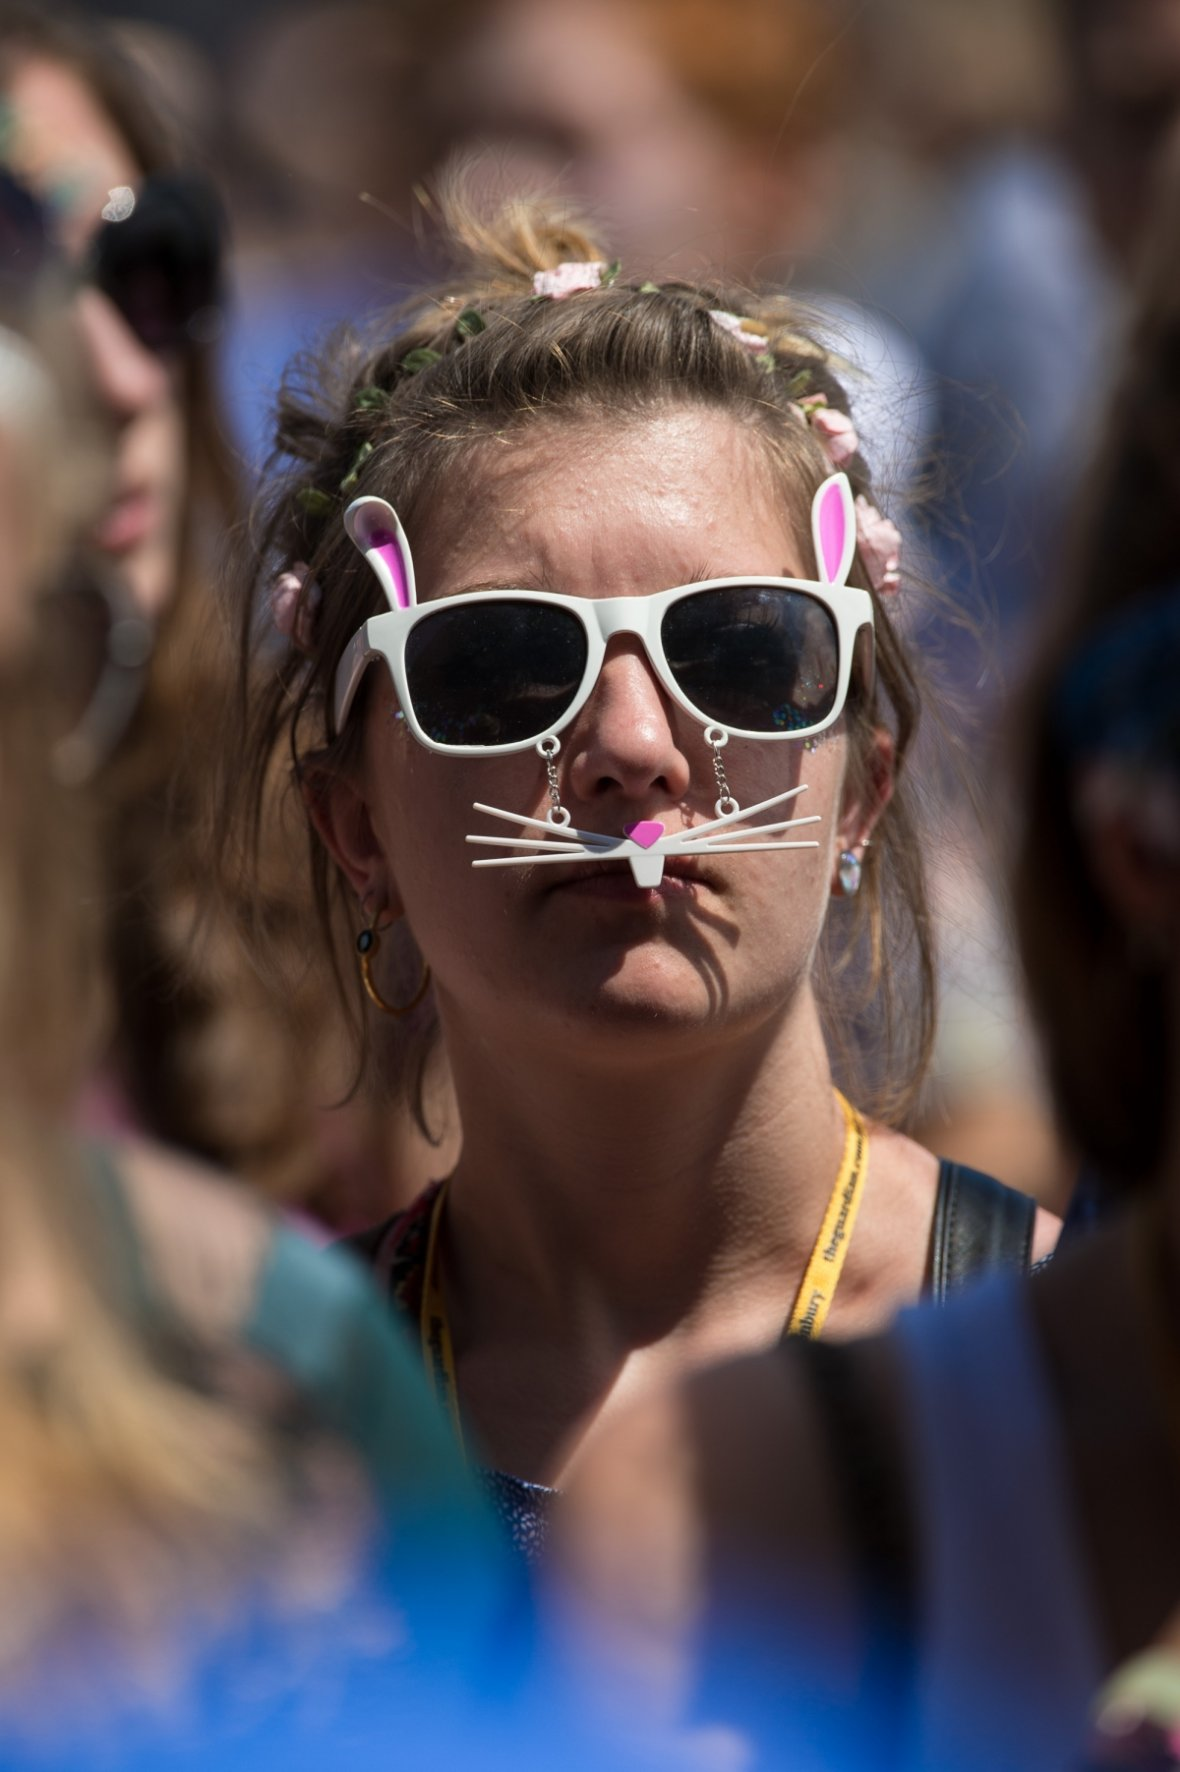 Some people think Glasto is the cat's whiskers